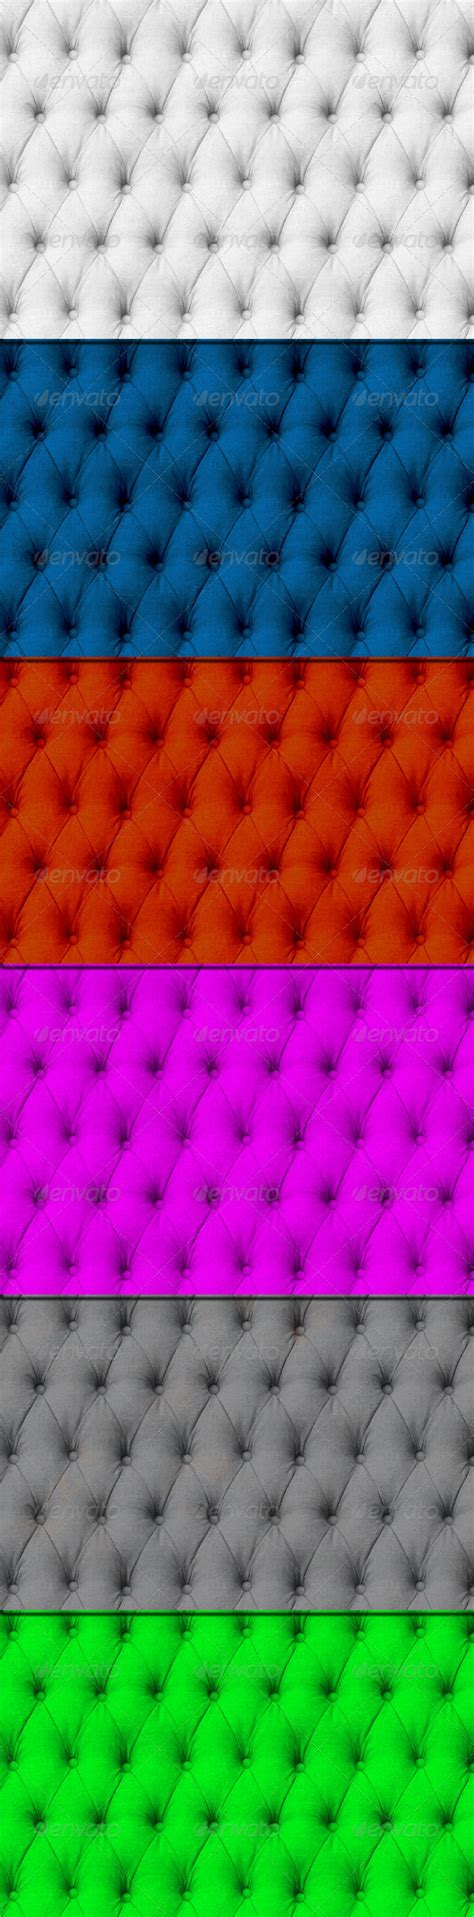 background rubber sts cozy background